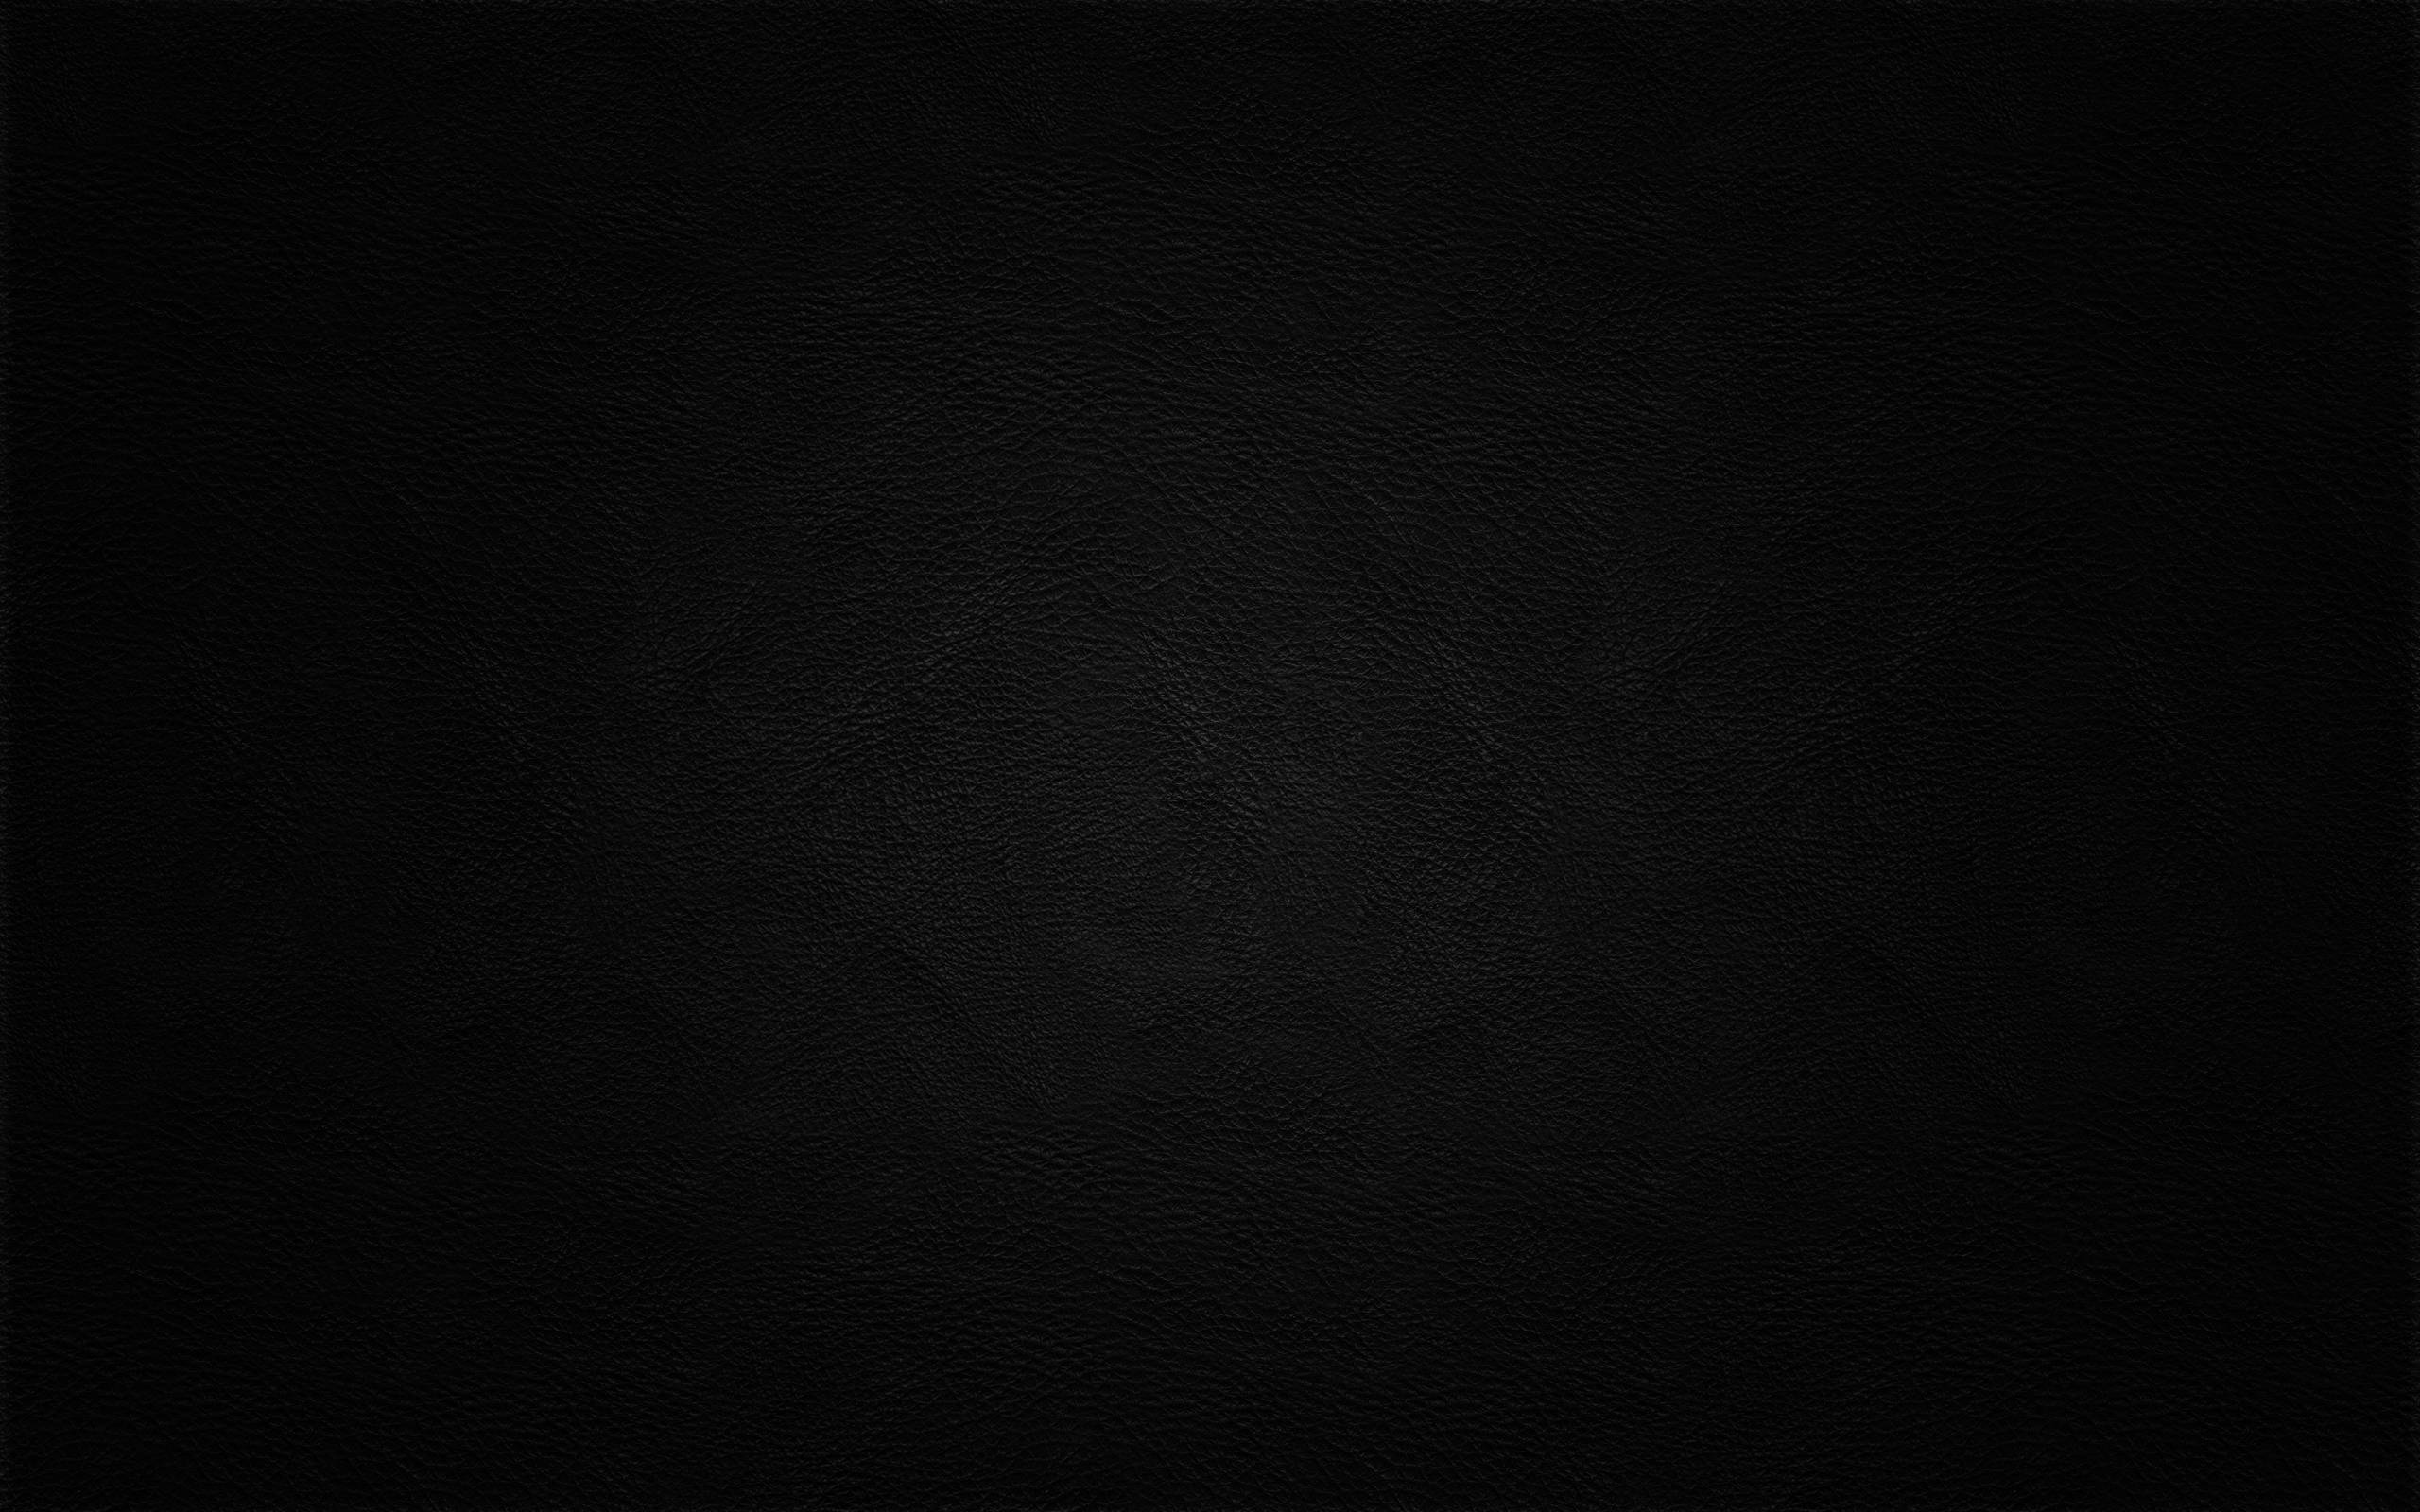 Full Black Wallpapers - Wallpaper Cave